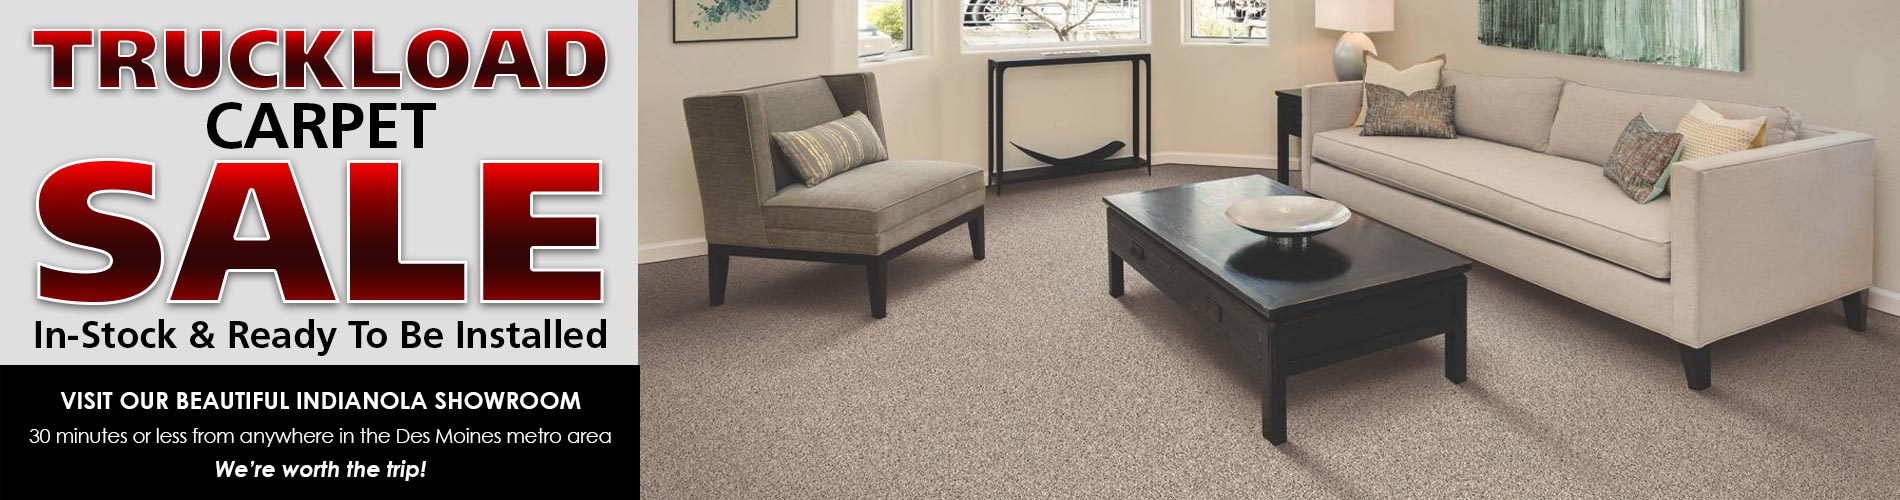 Truckload Carpet Sale - In-stock and ready to be installed - Visit our beautiful Indianola showroom